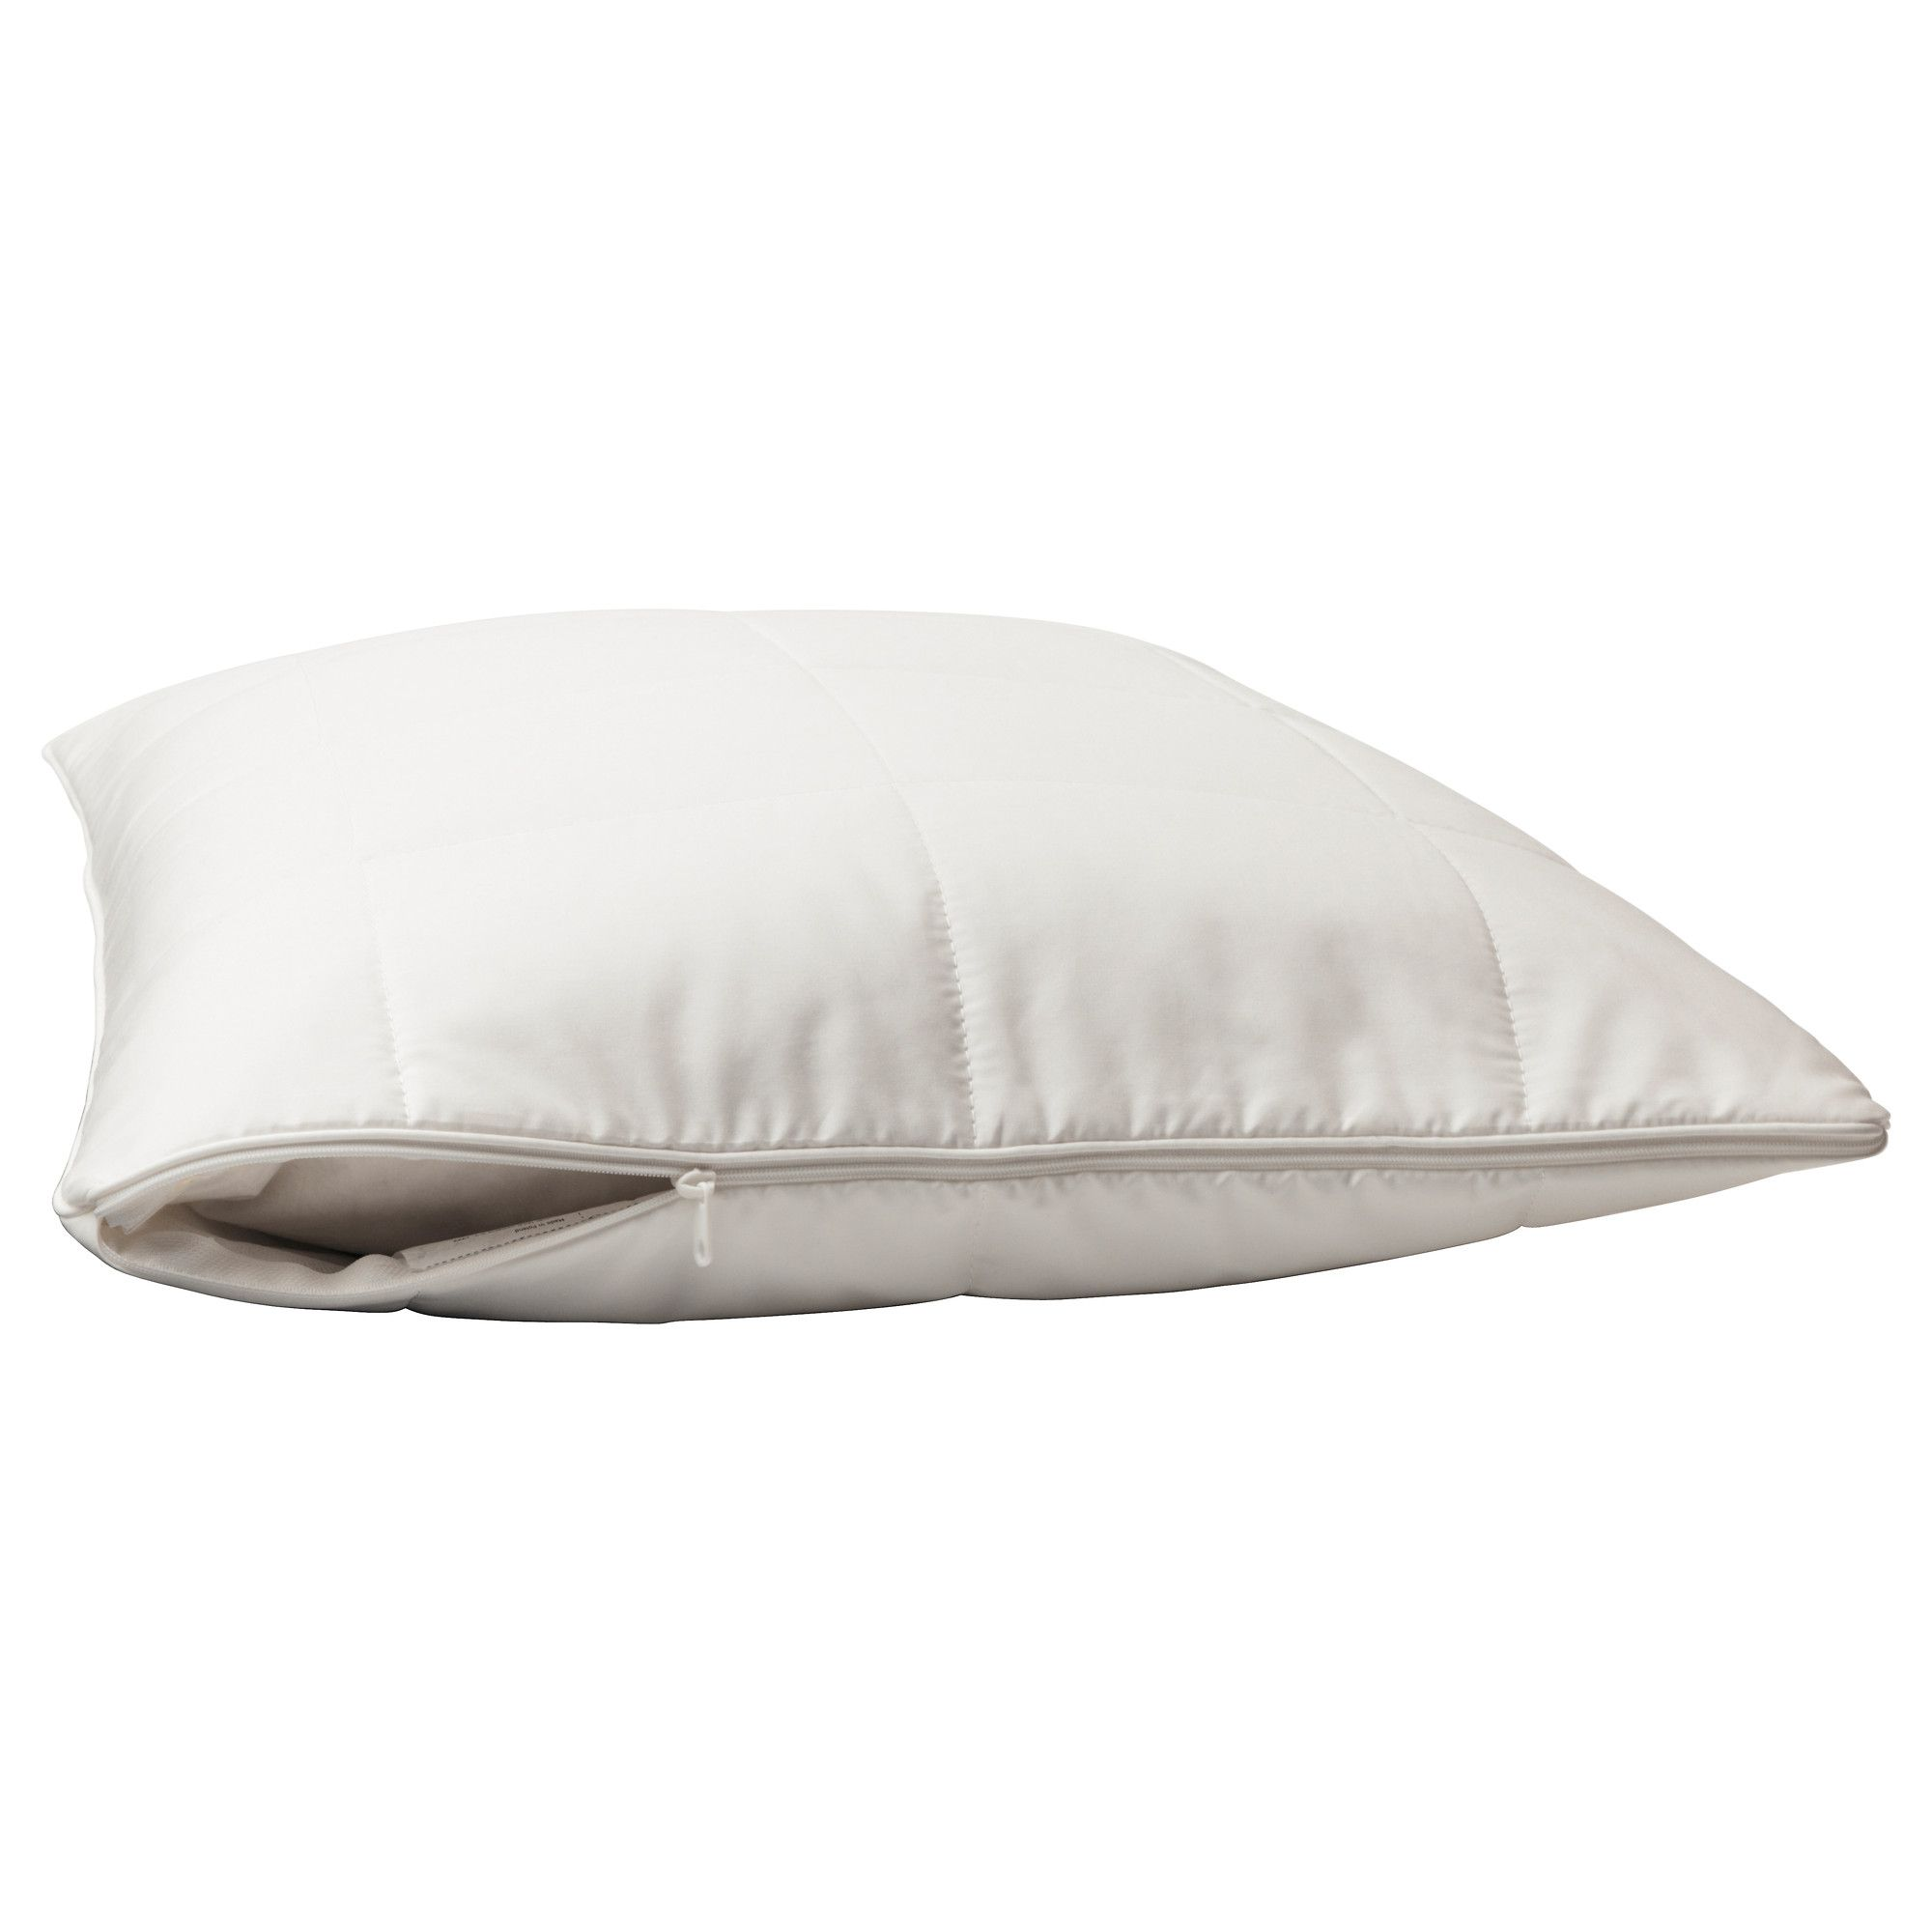 zipper and protectors down protector essential cotton pillow natural white etc bedding details